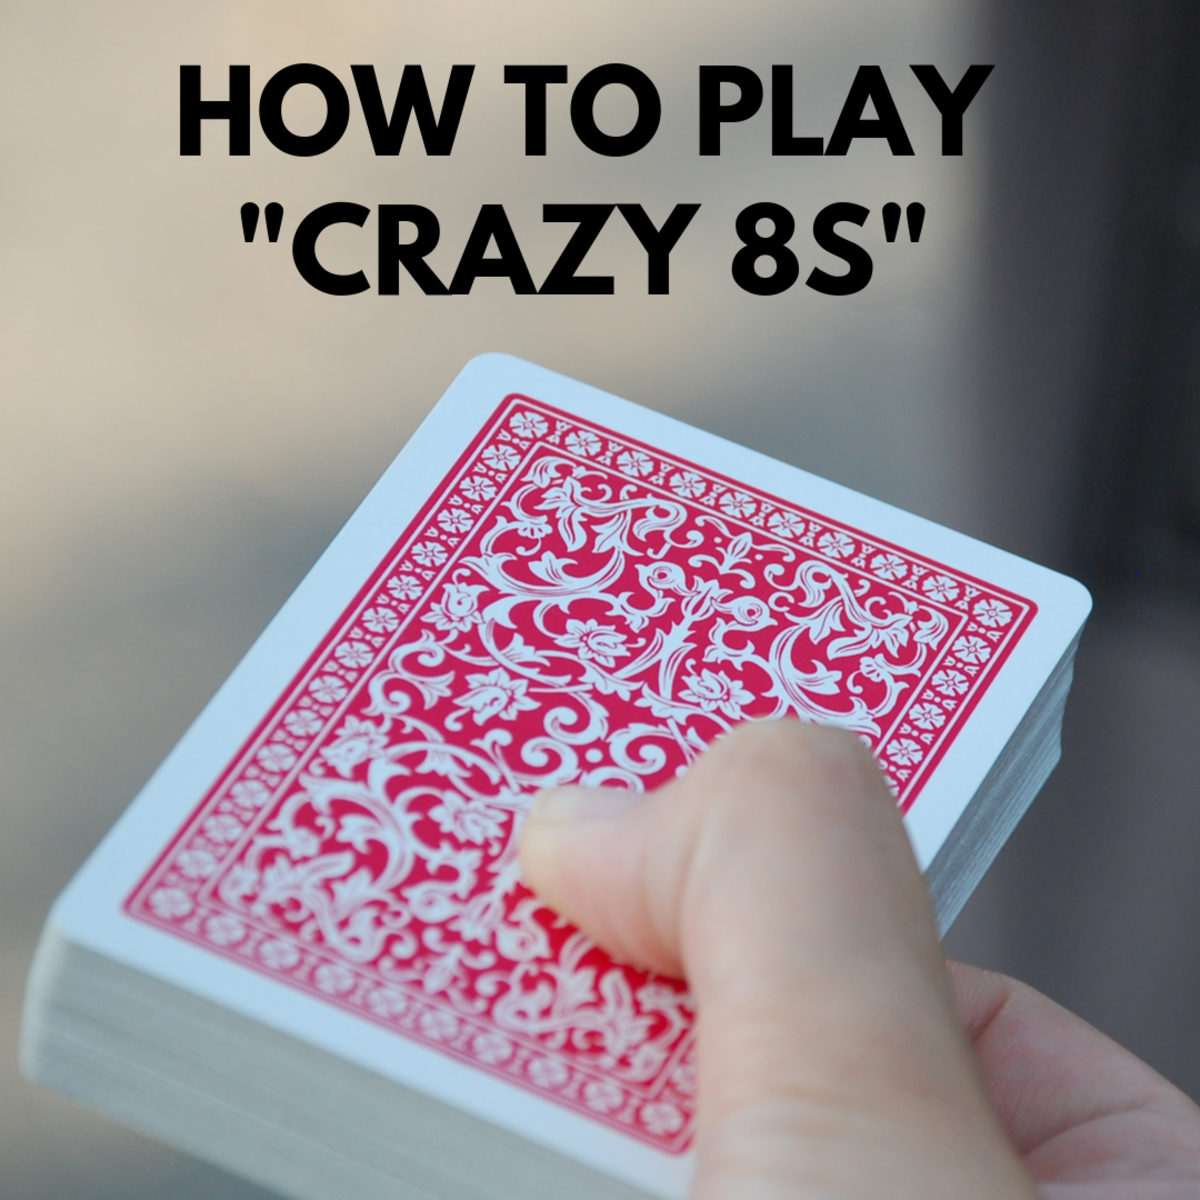 How to Play Crazy 8s